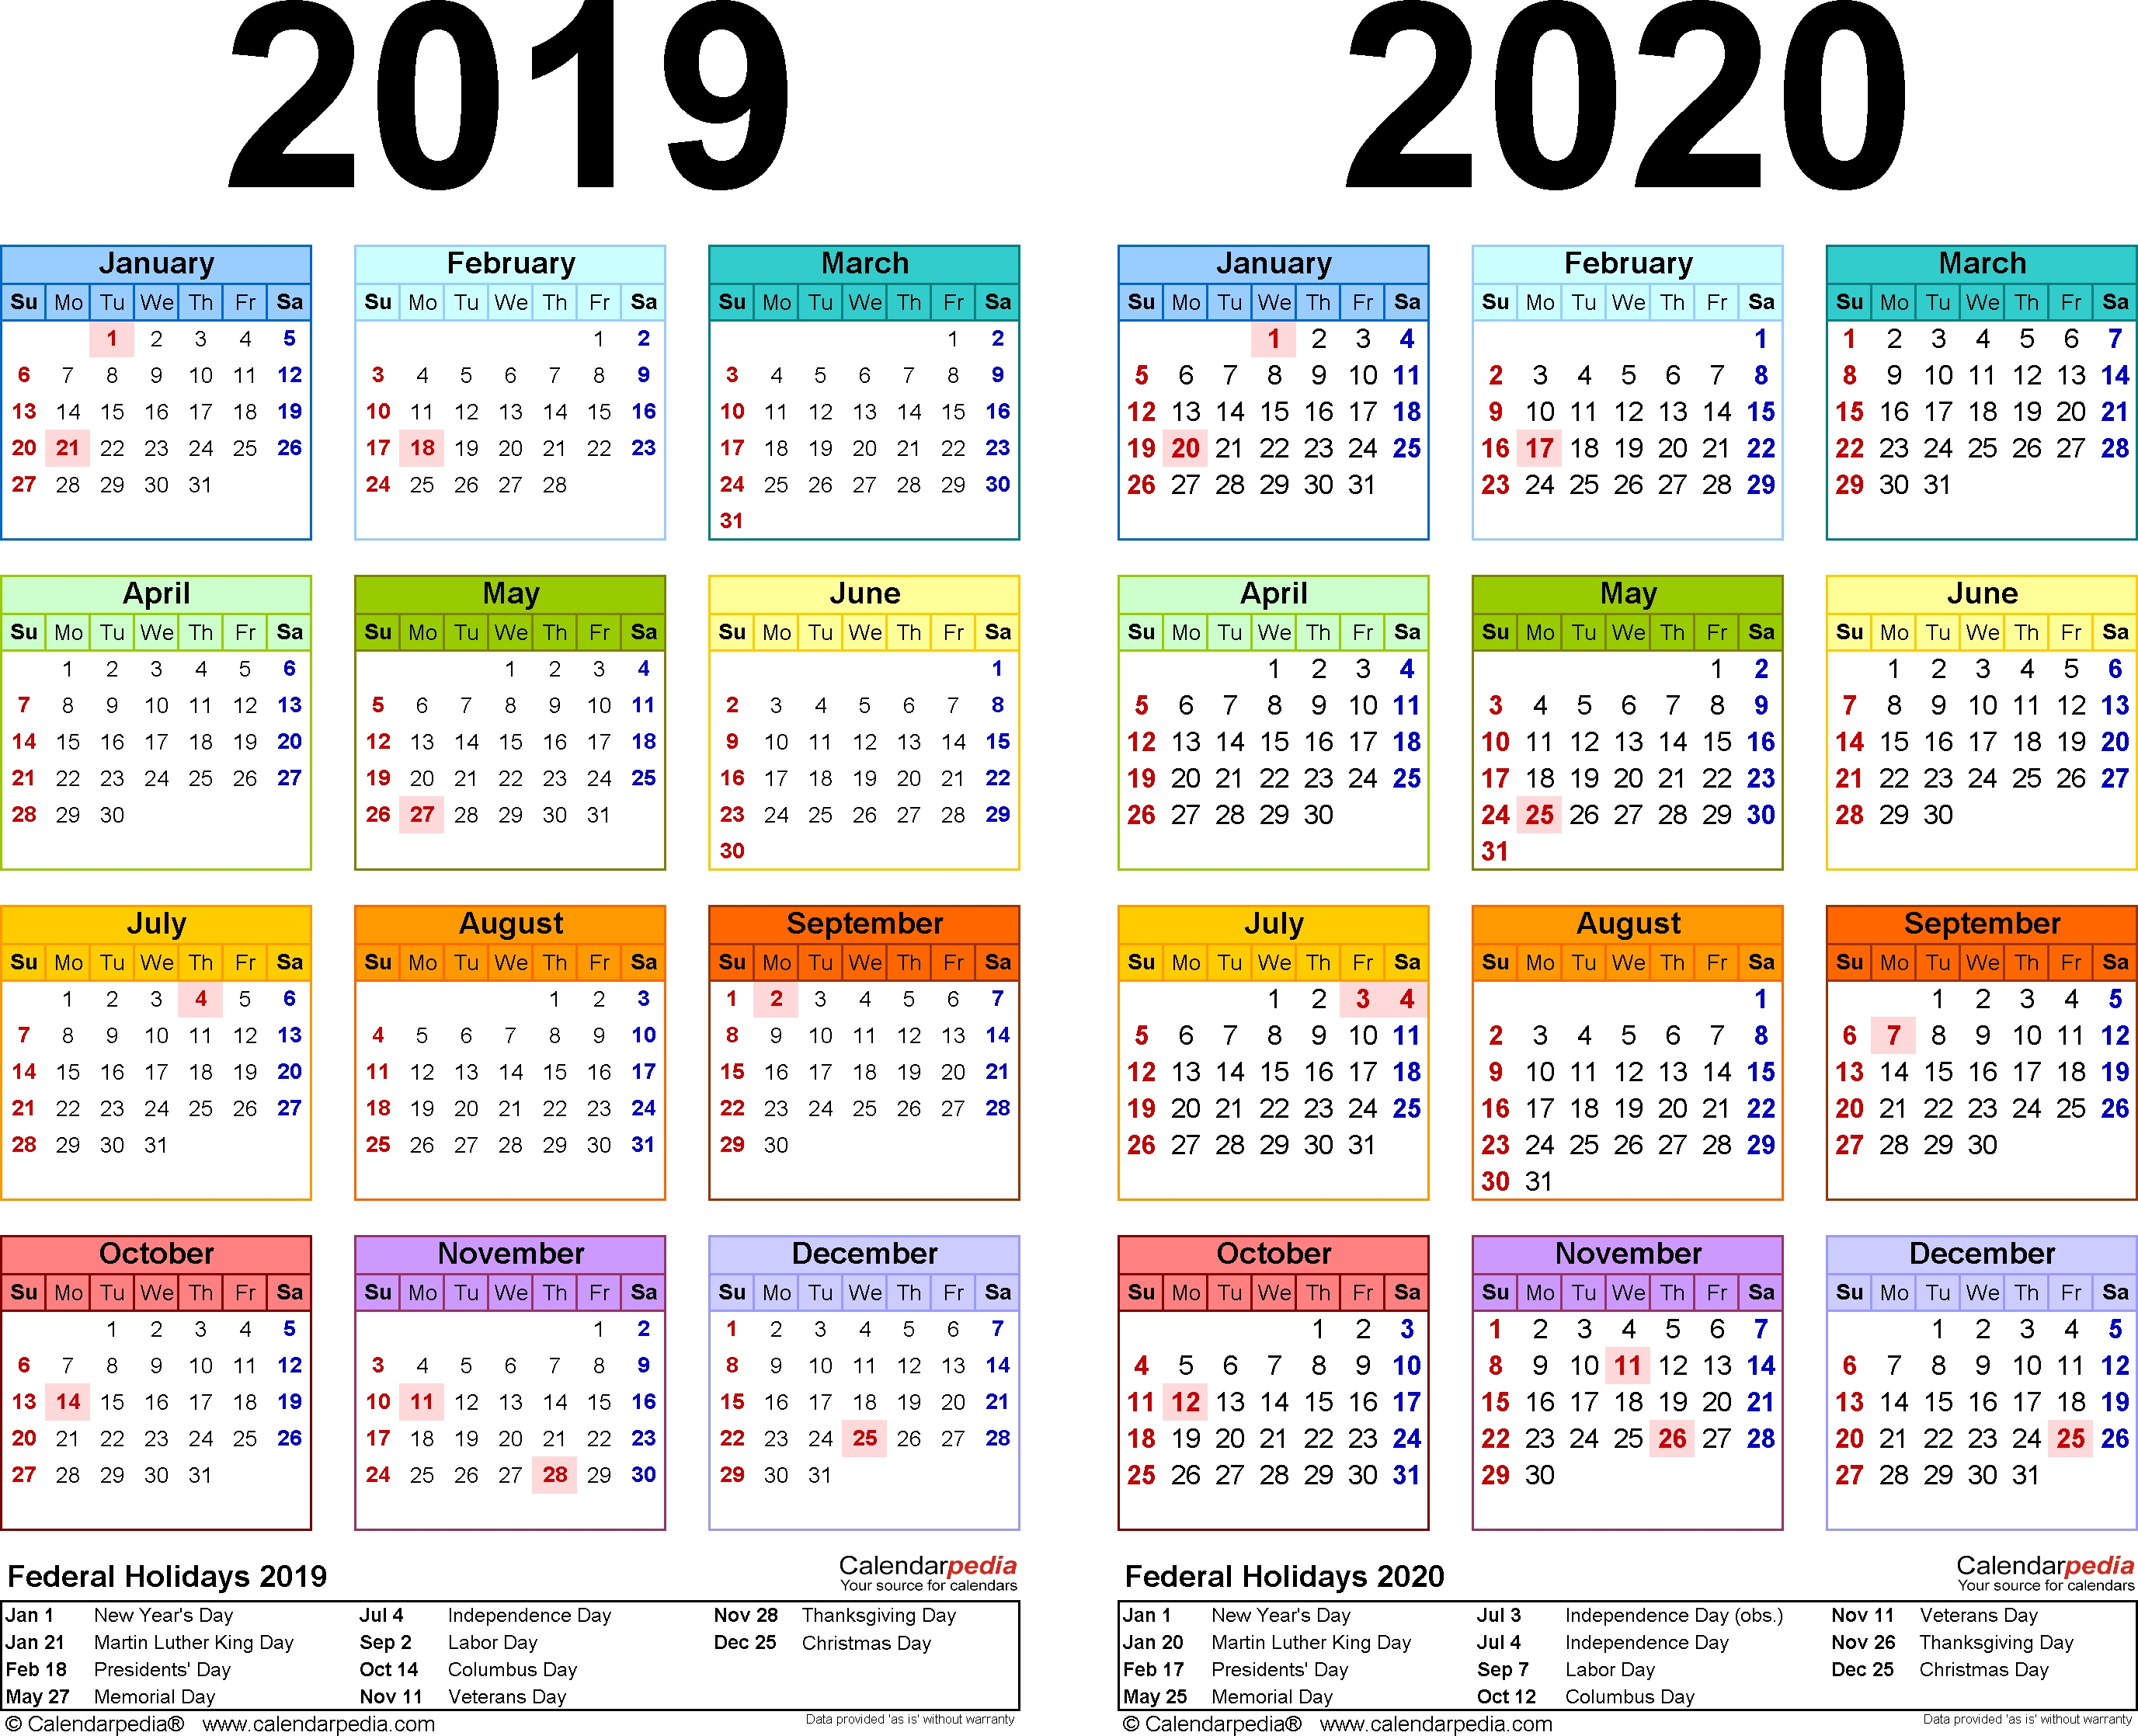 2019-2020 Two Year Calendar - Free Printable Excel Templates within U Of M 2019 2020 Calendar